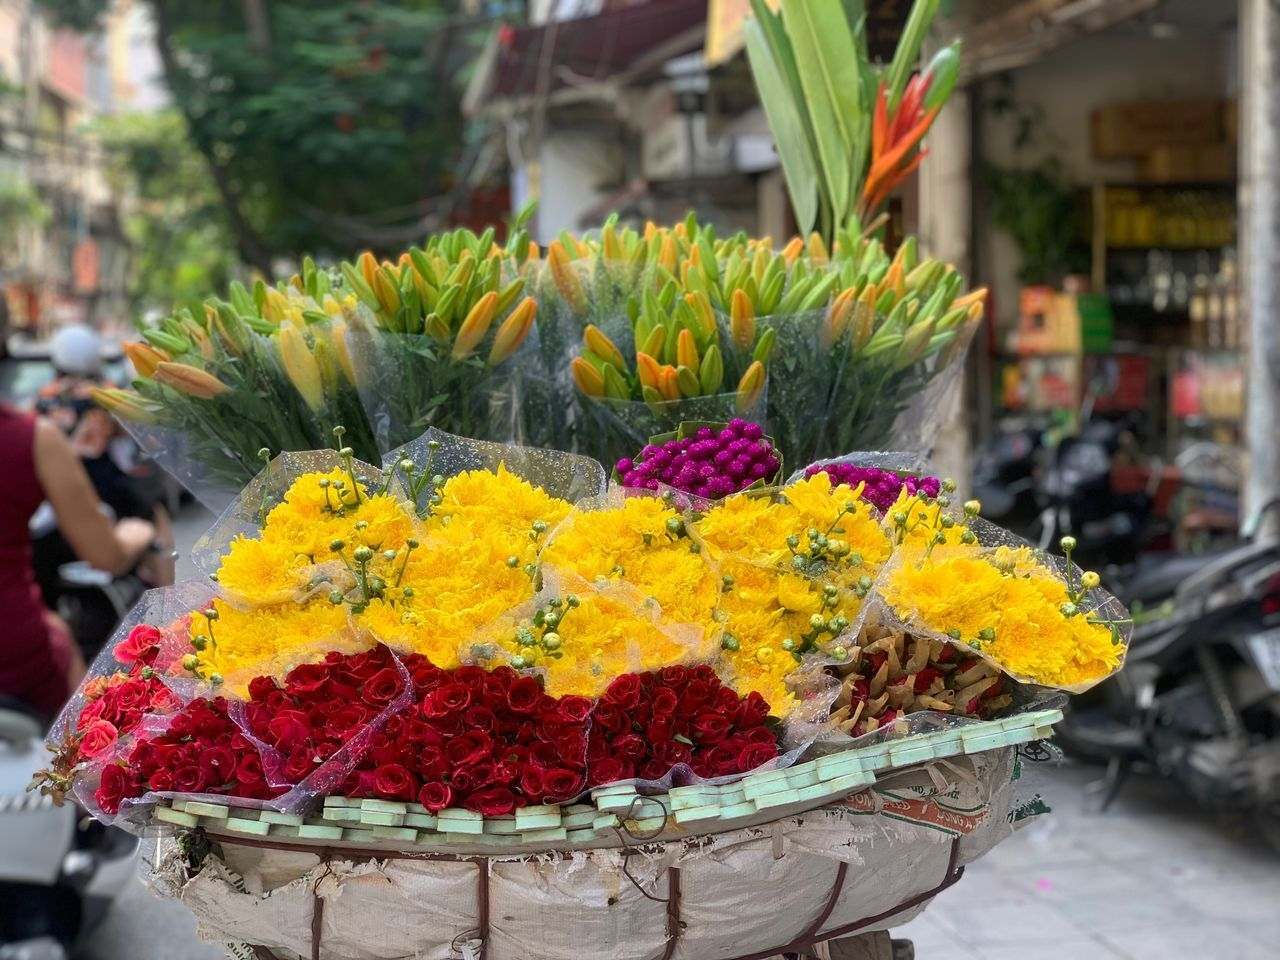 flower, flowering plant, plant, focus on foreground, freshness, close-up, retail, market, day, for sale, vulnerability, incidental people, nature, fragility, small business, choice, container, yellow, beauty in nature, business, flower head, outdoors, retail display, flower arrangement, bouquet, flower market, sale